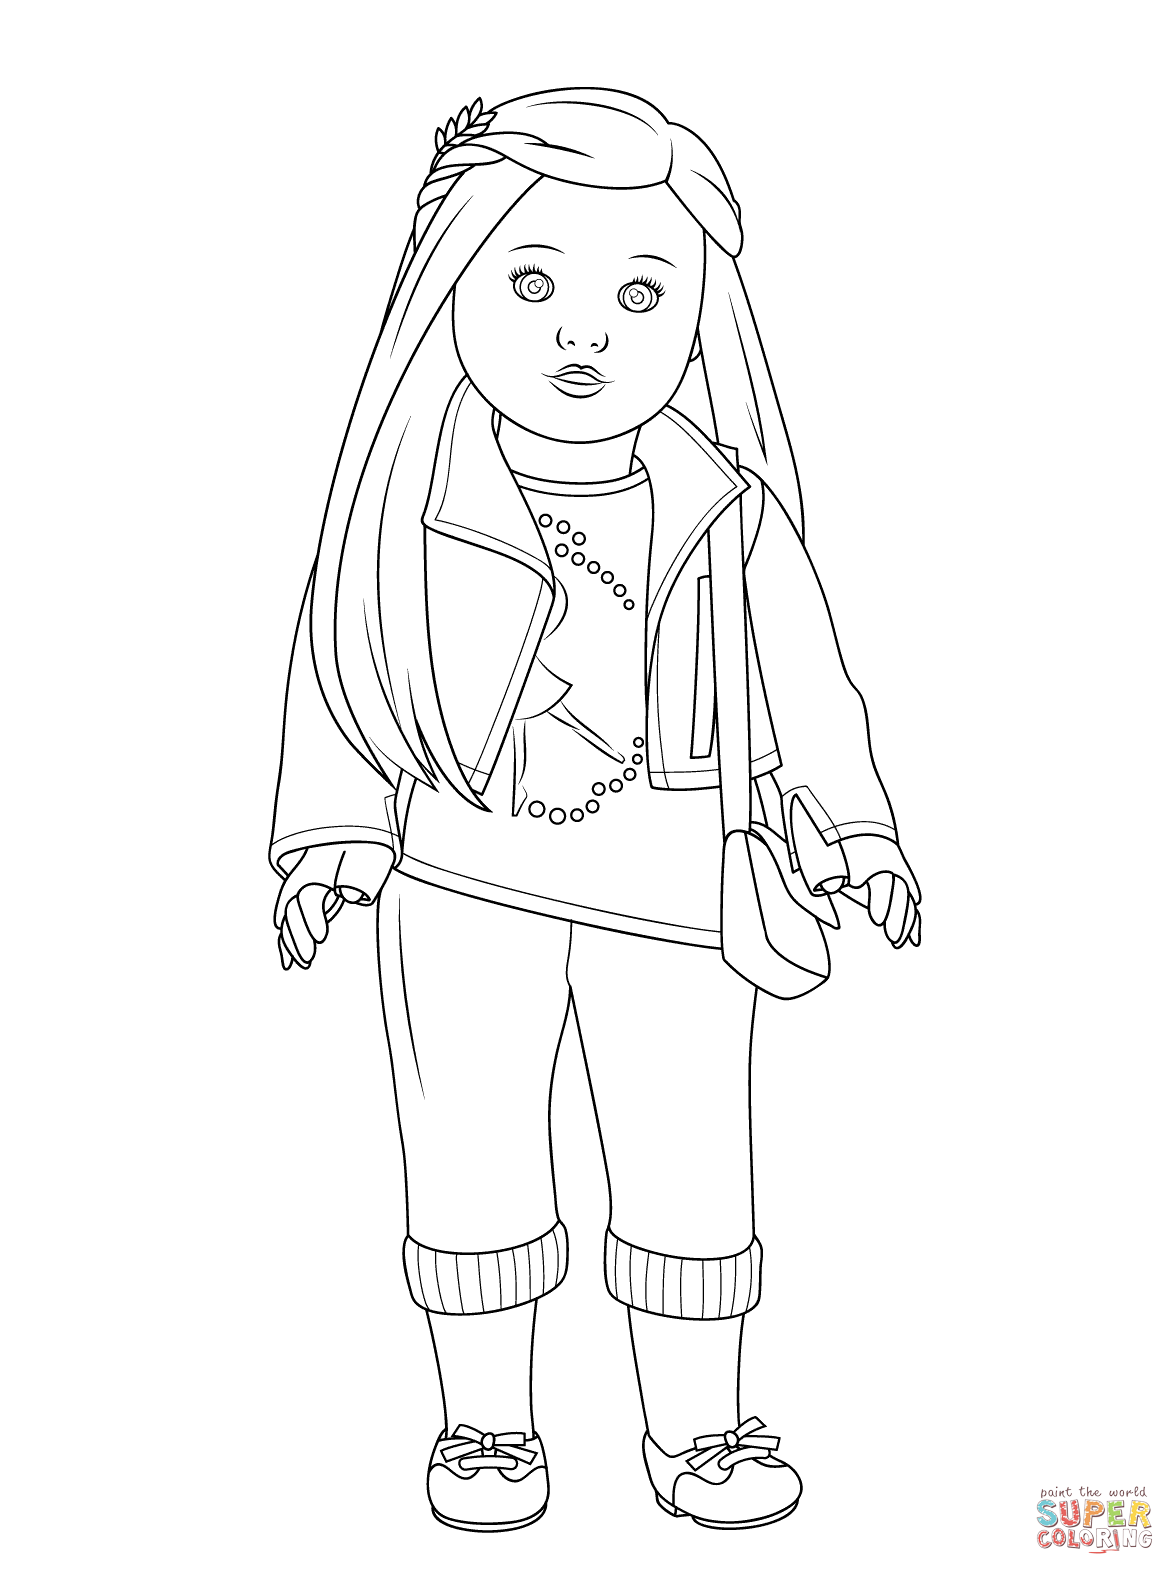 a coloring page of a girl